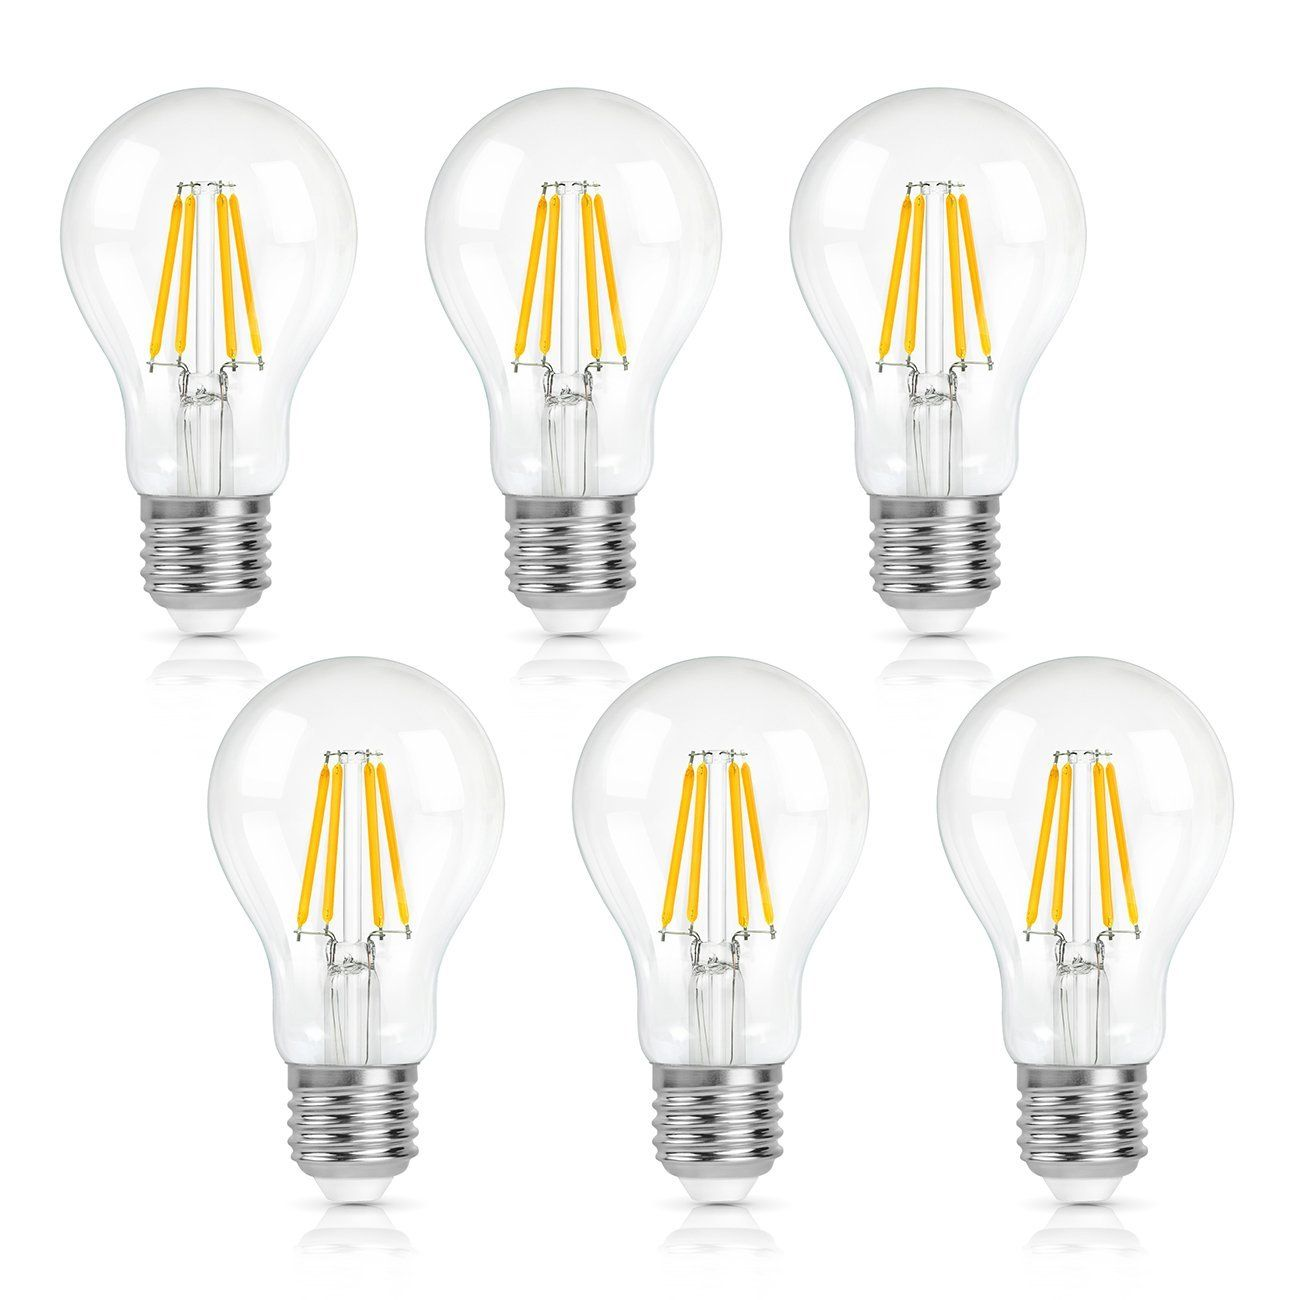 Check This Top 10 Best Led Vintage Light Bulbs In